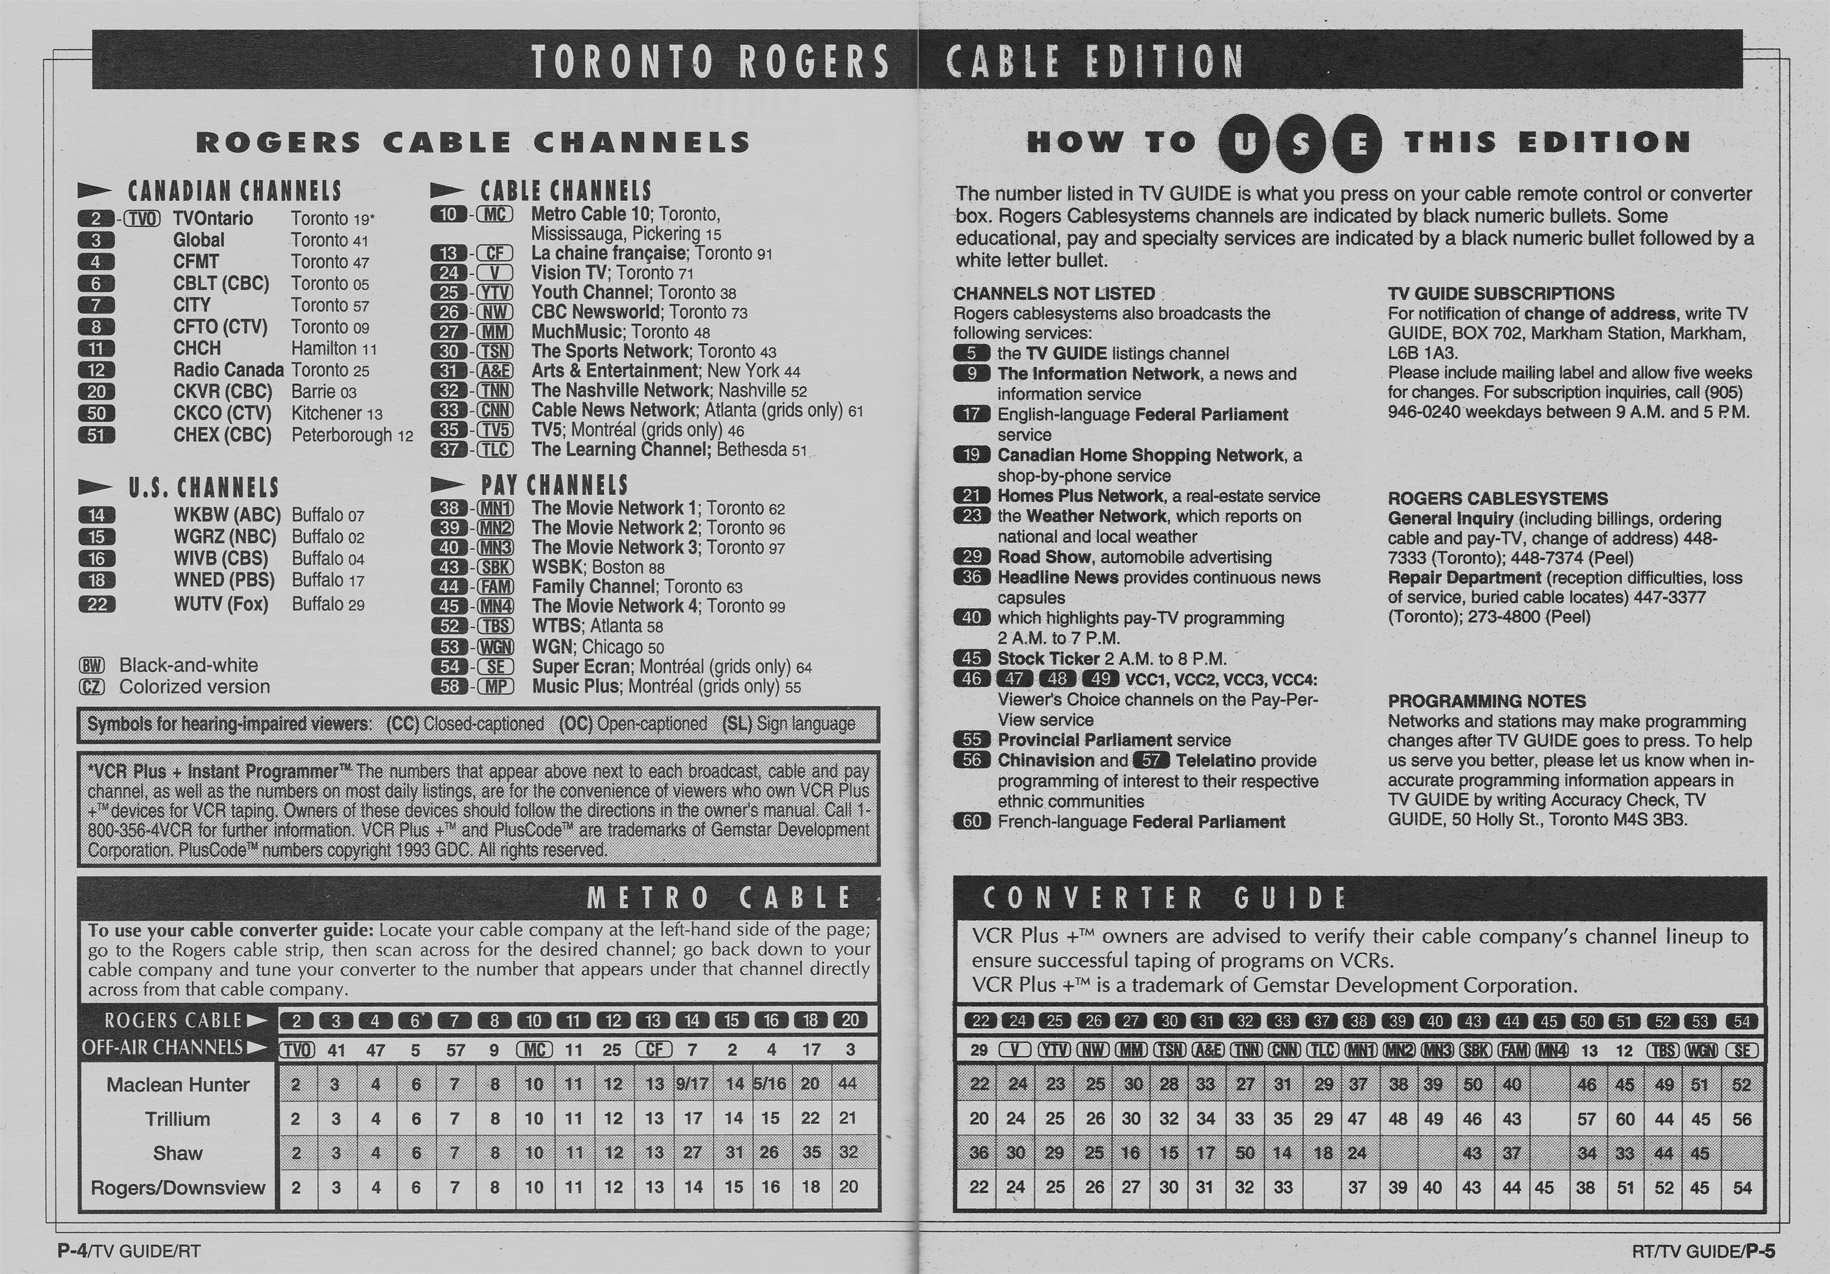 TV Guide October 16 1993 Toronto Rogers Cable Edition Cable Converter Guide